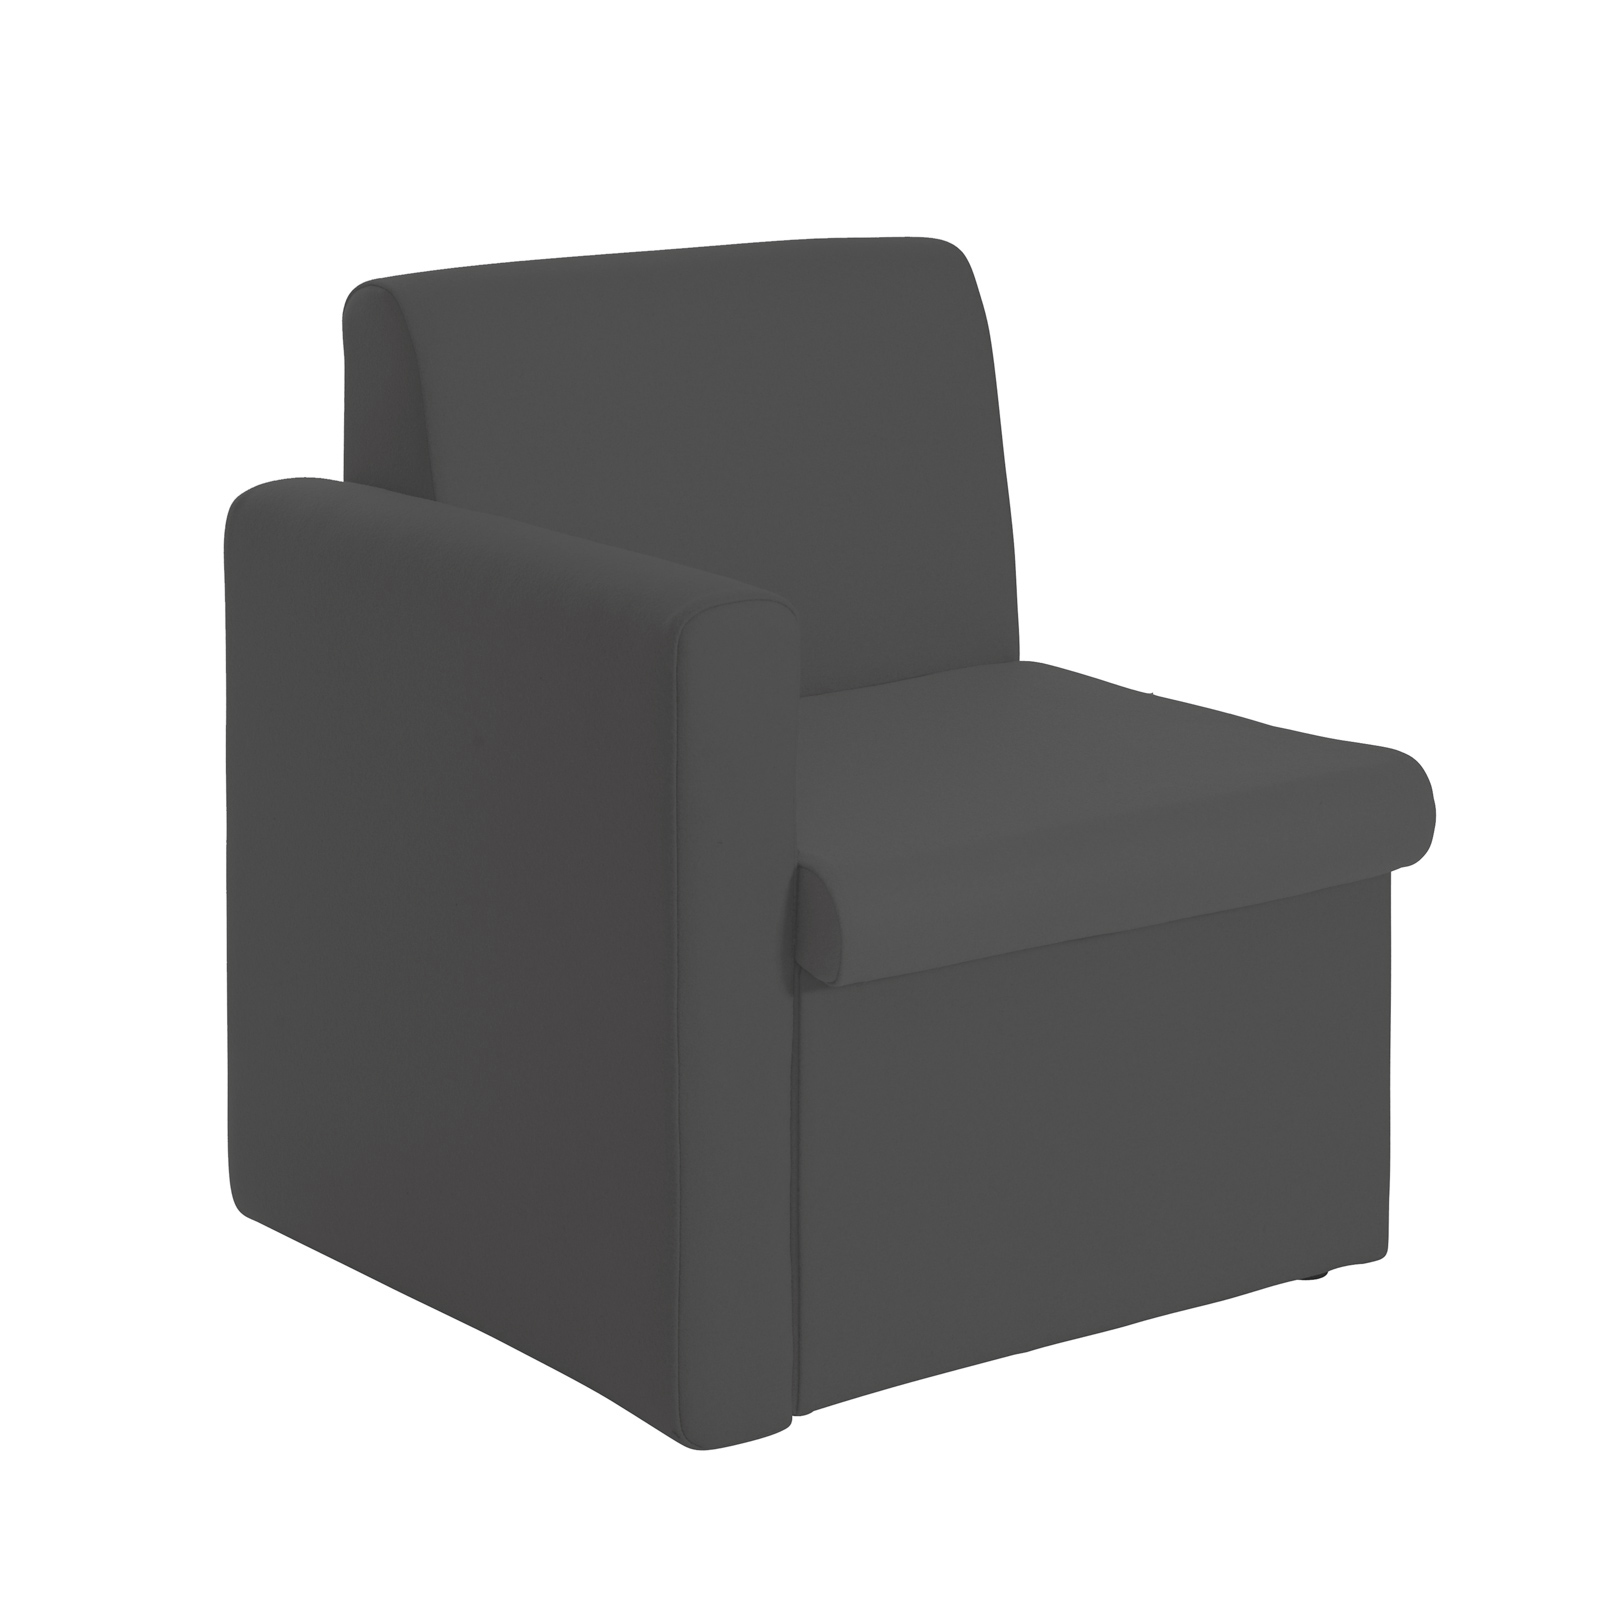 Alto modular reception seating with right hand arm - charcoal